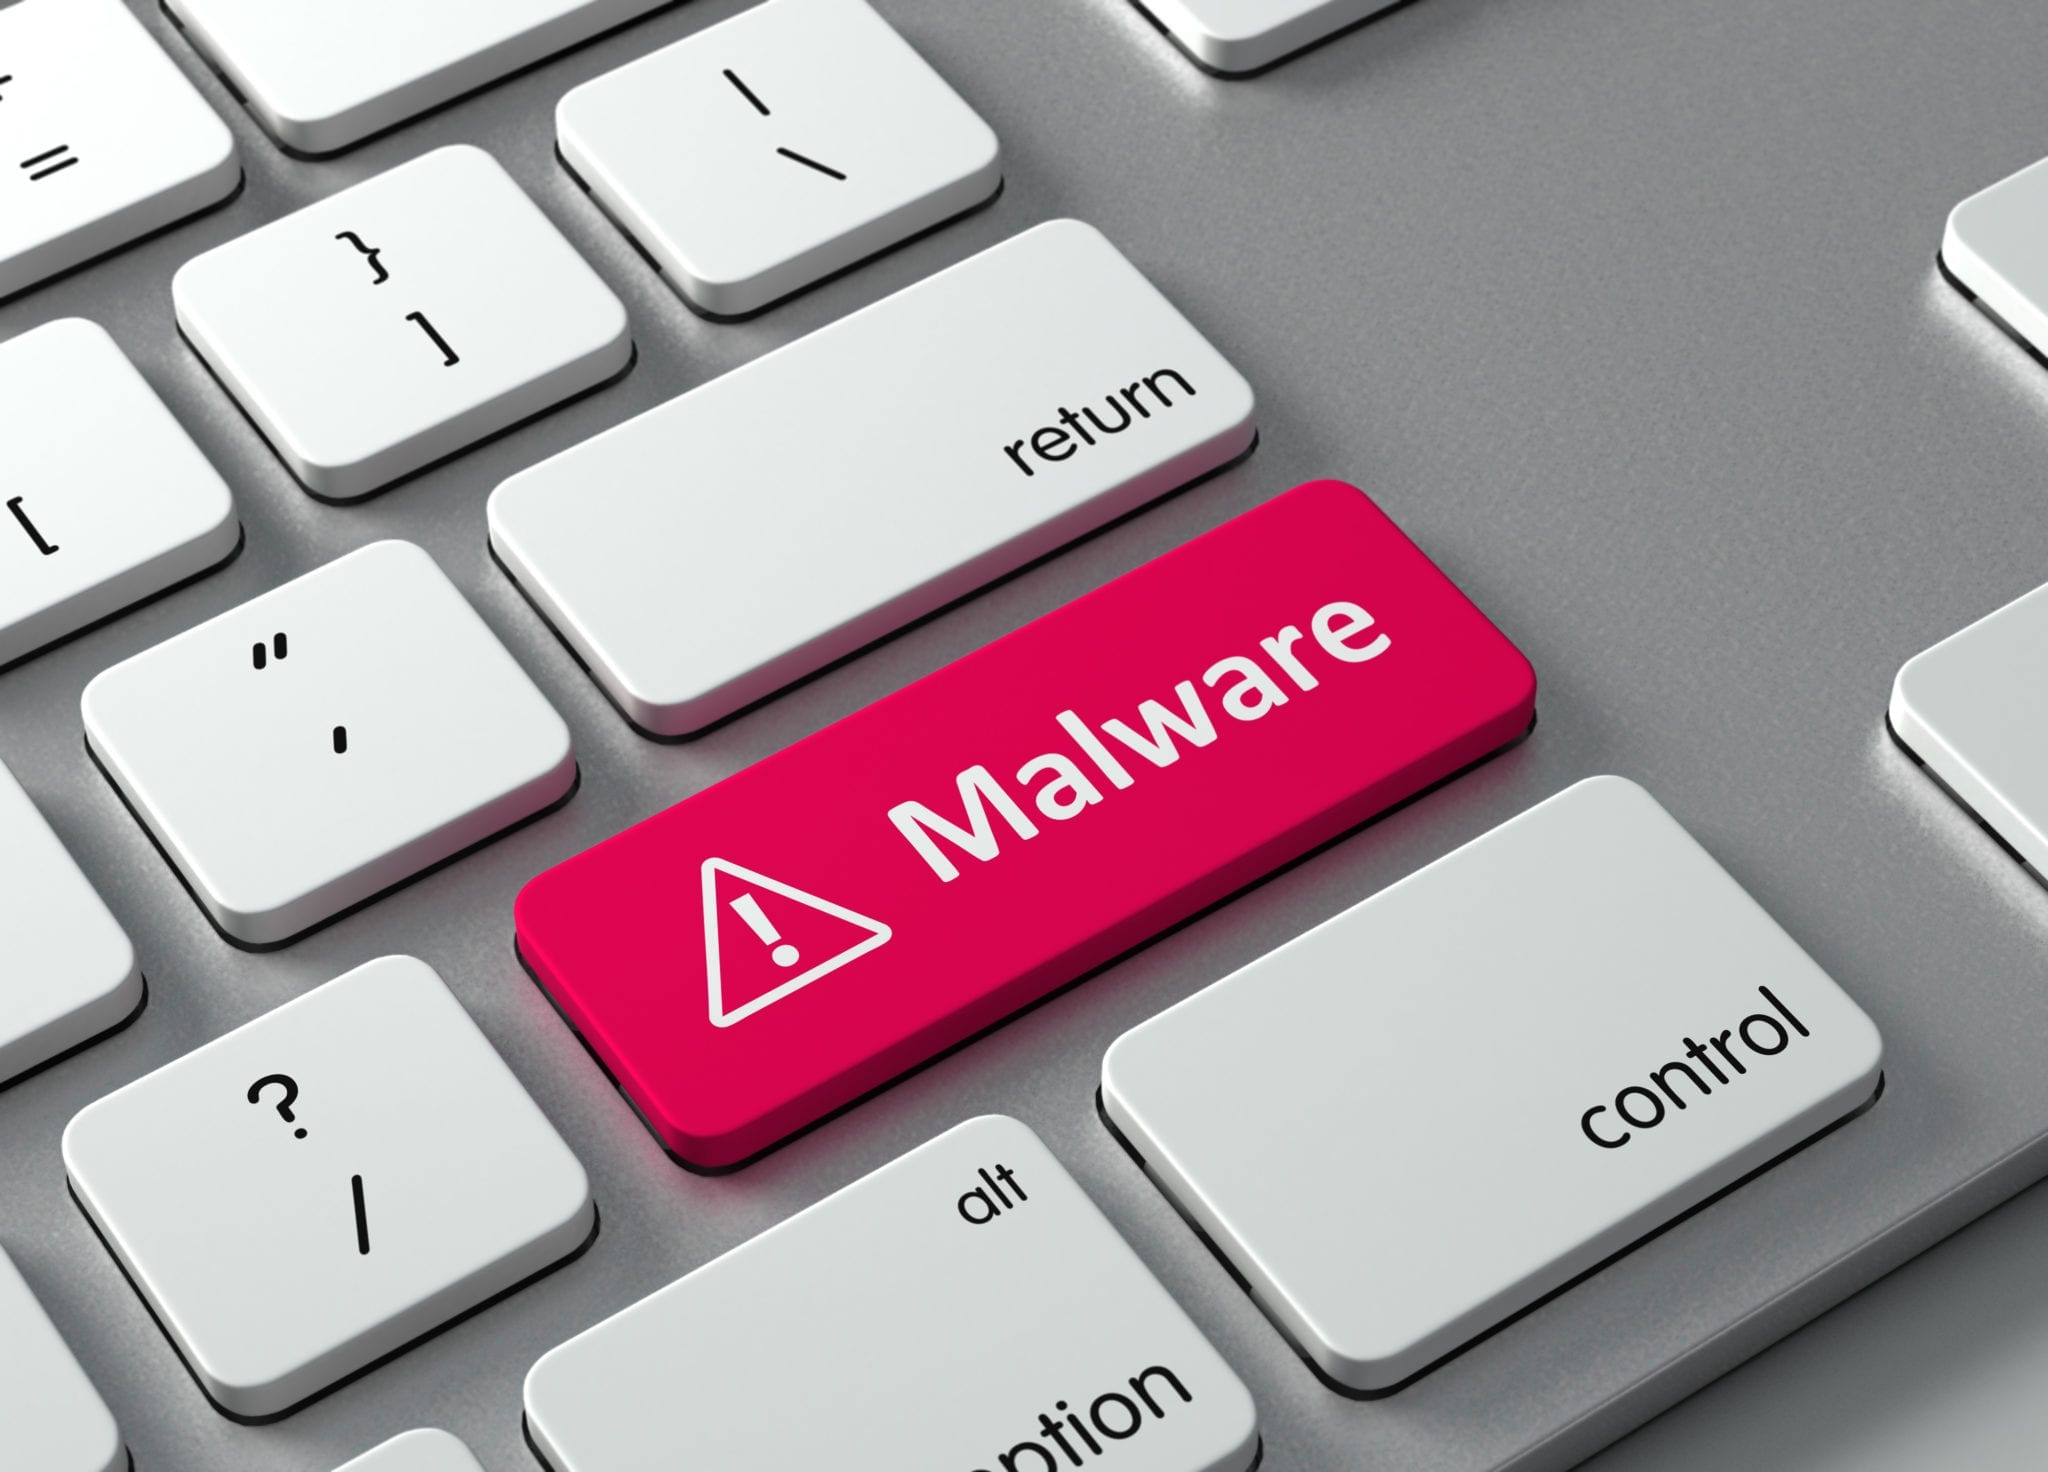 is-your-website-software-up-to-date-if-not-you-could-be-opening-your-business-to-a-world-of-risk.jpeg